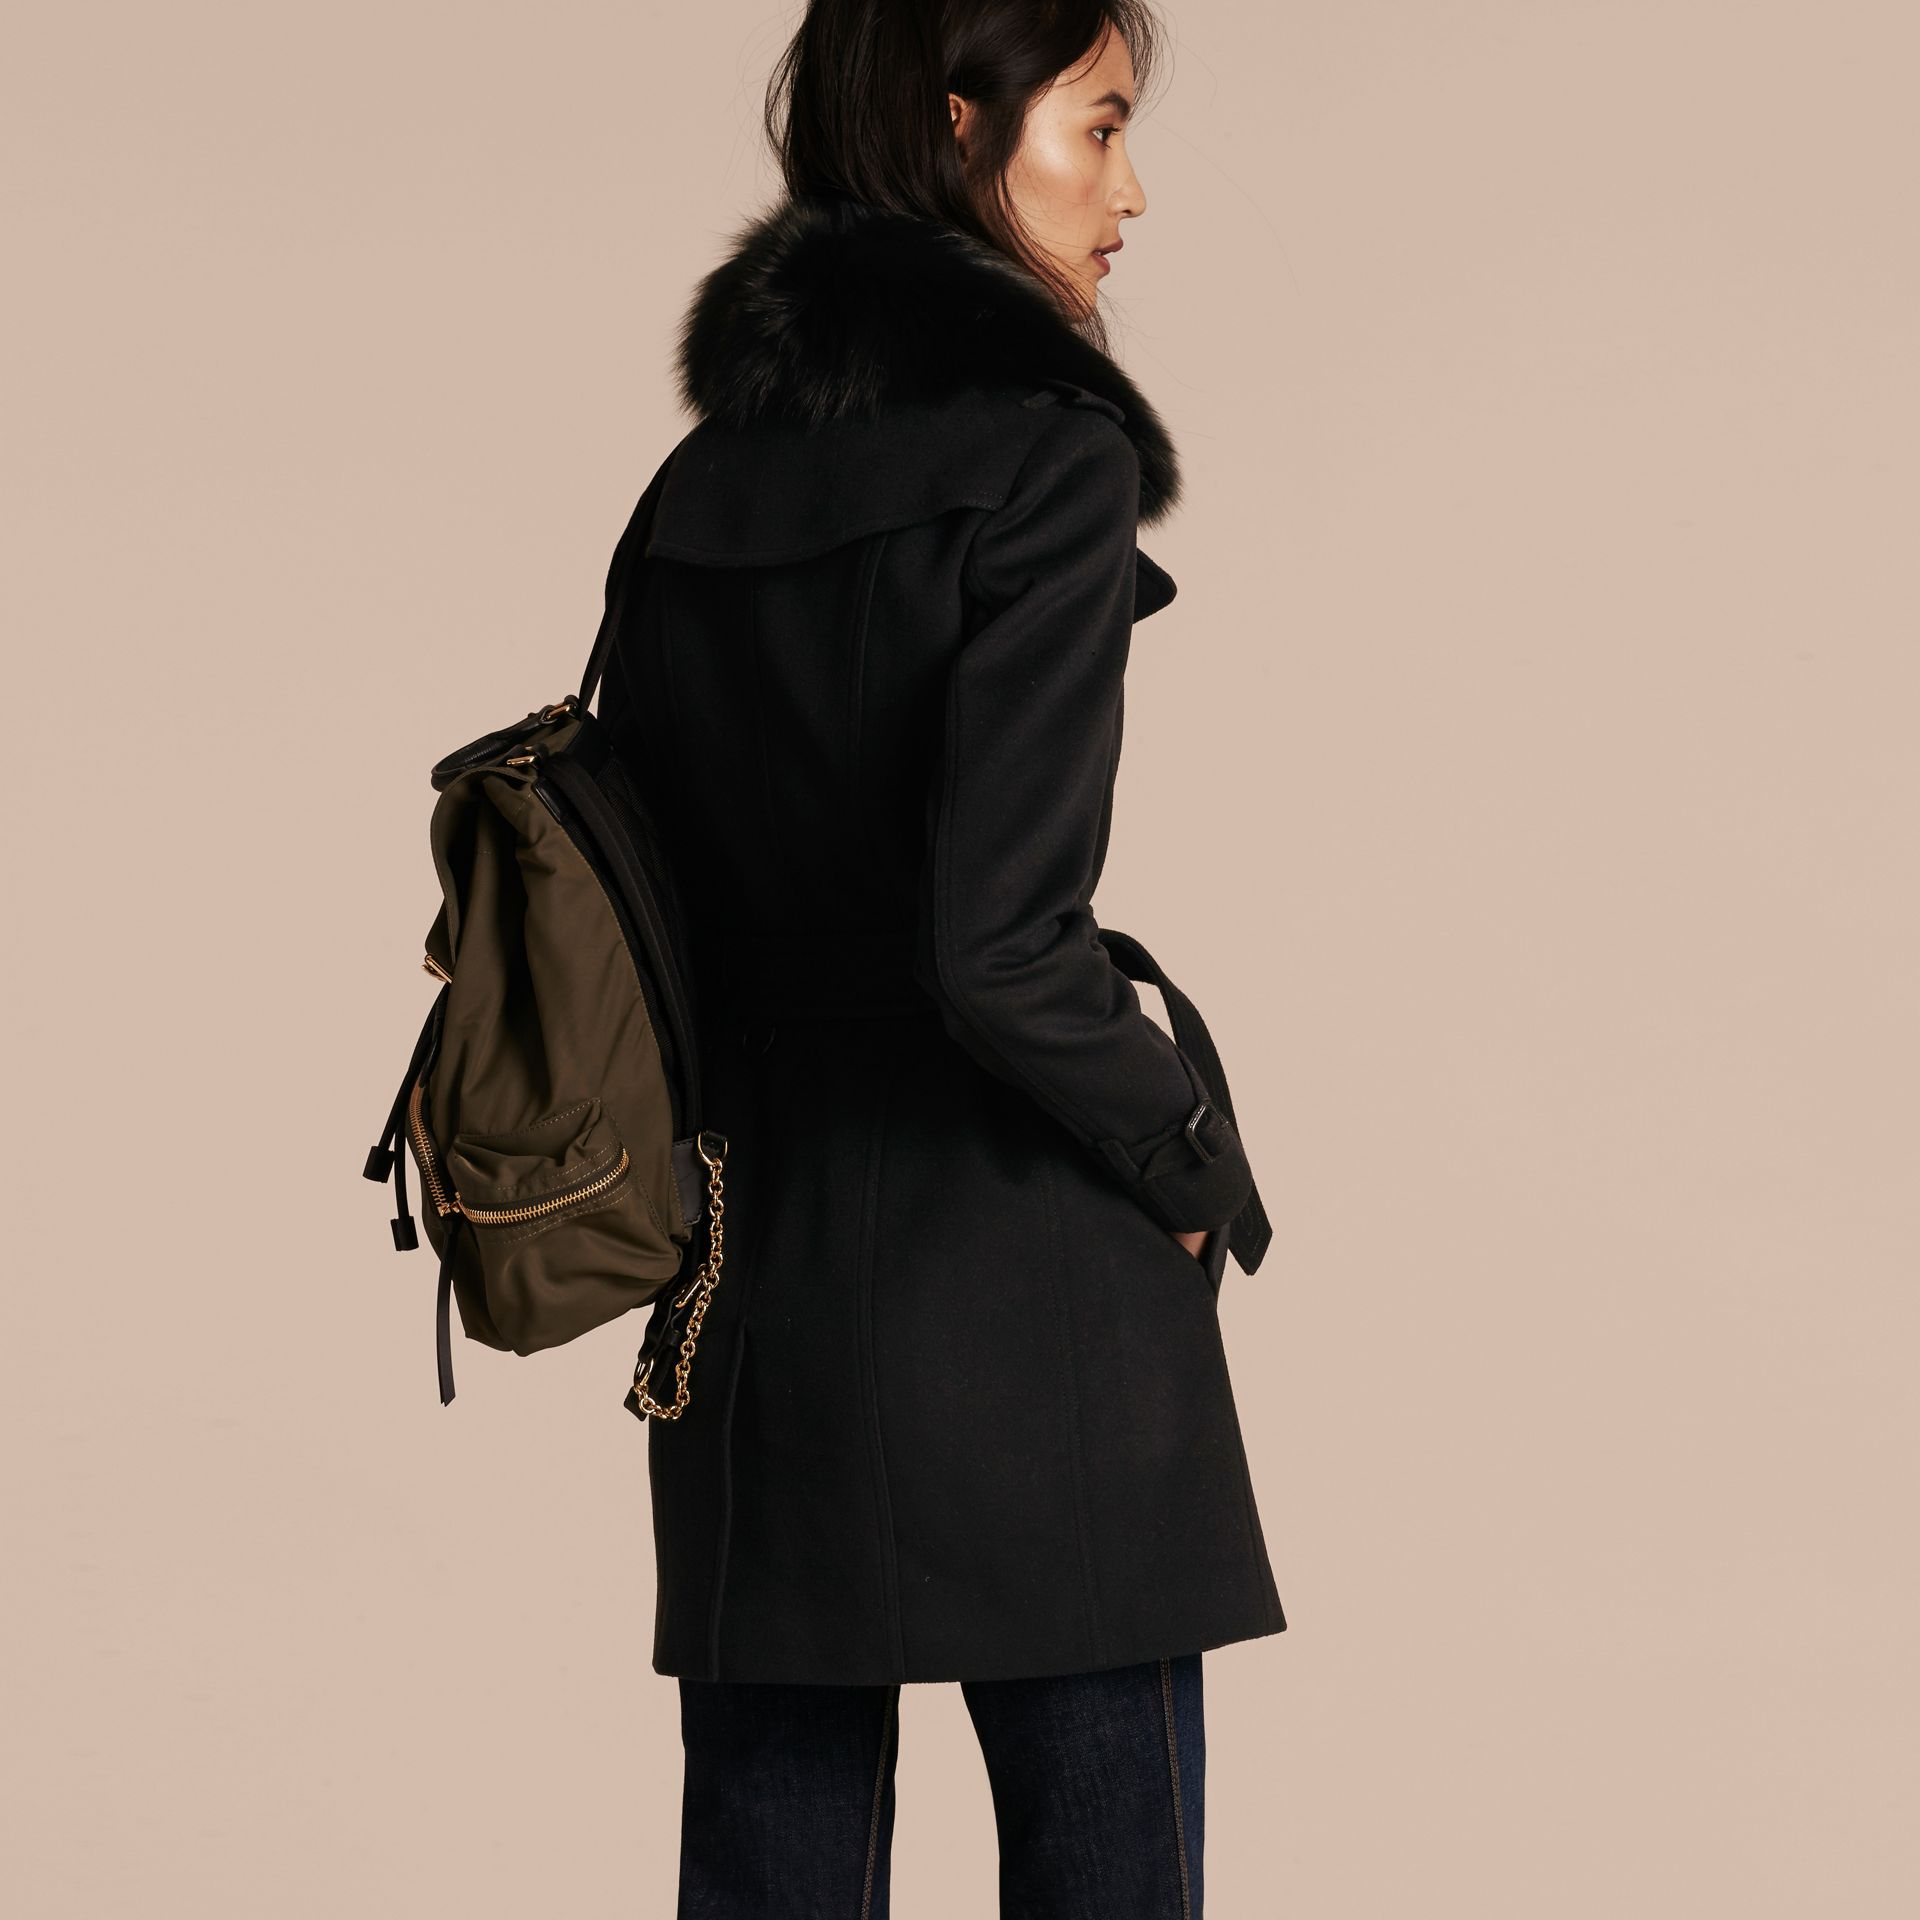 Wool Cashmere Trench Coat with Fur Collar in Black - Women | Burberry Australia - gallery image 3